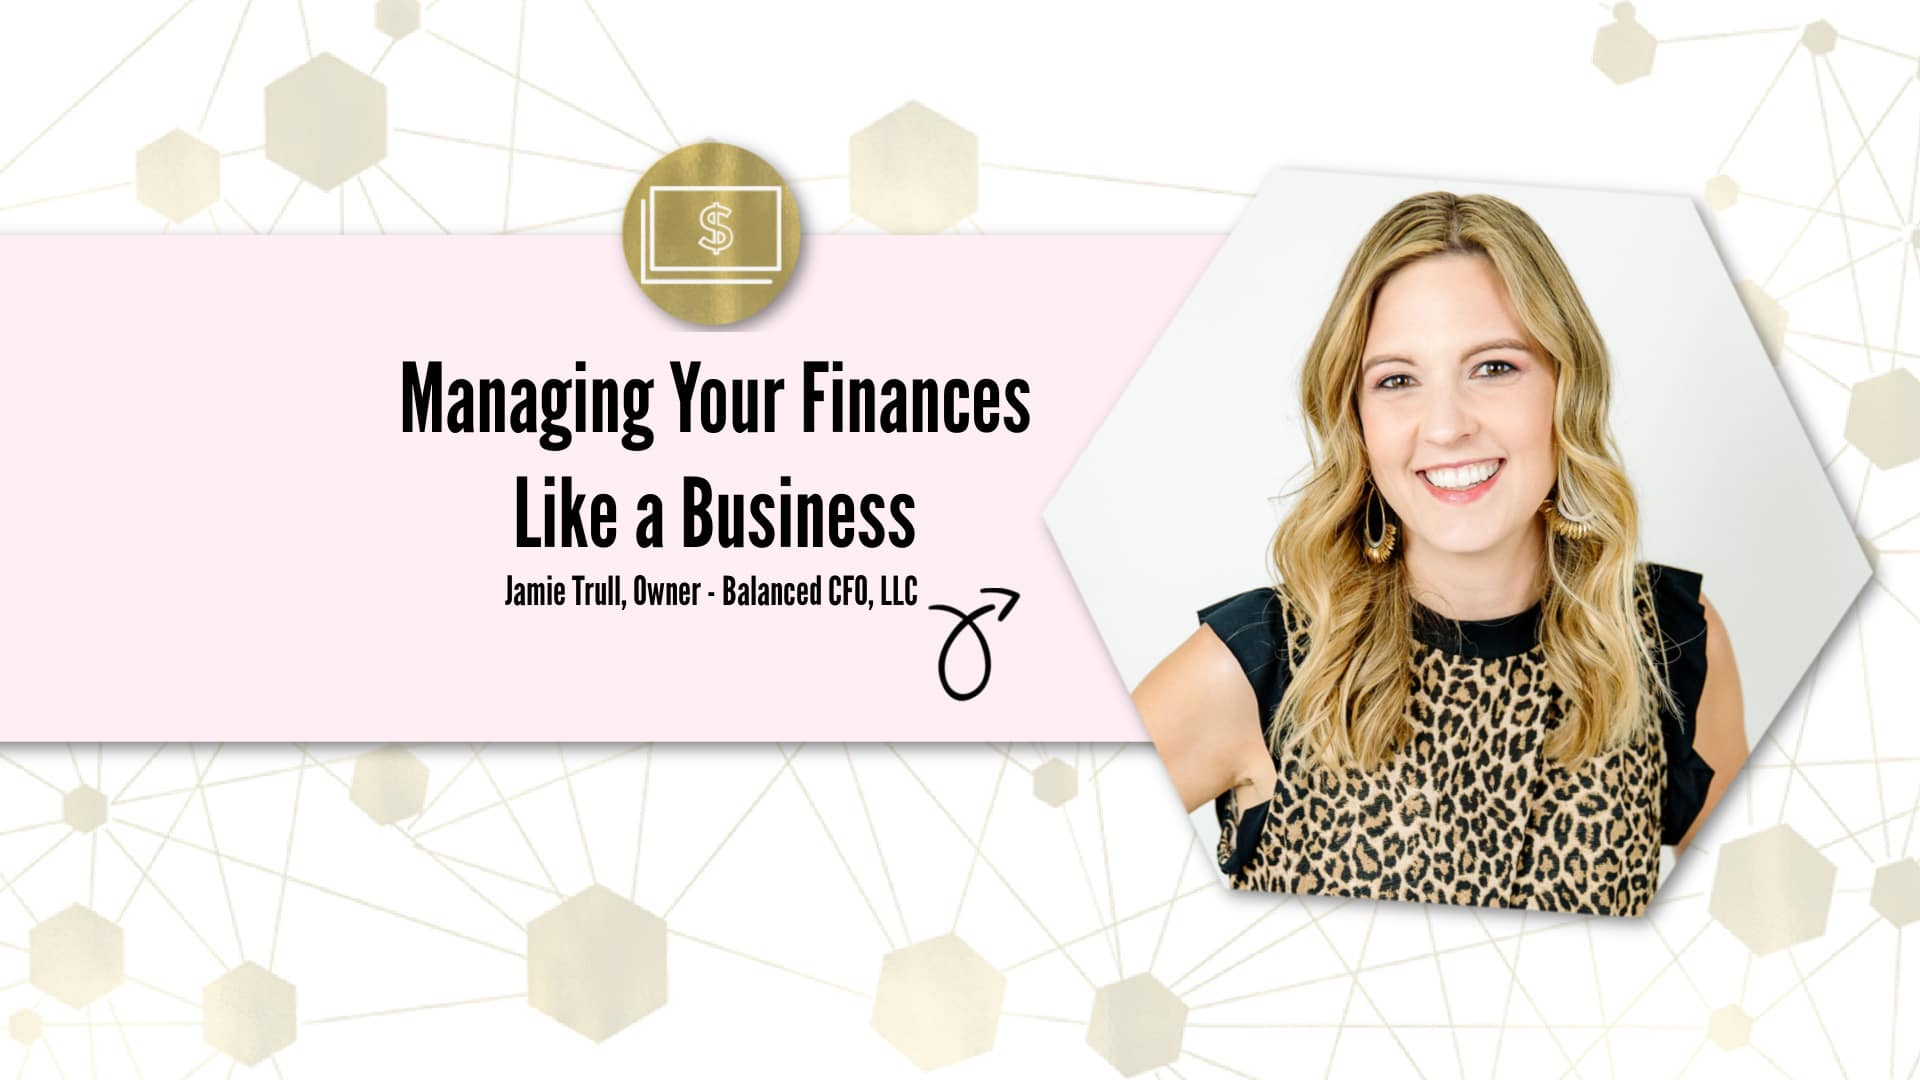 Managing Your Finances Like a Business masterclass overlay